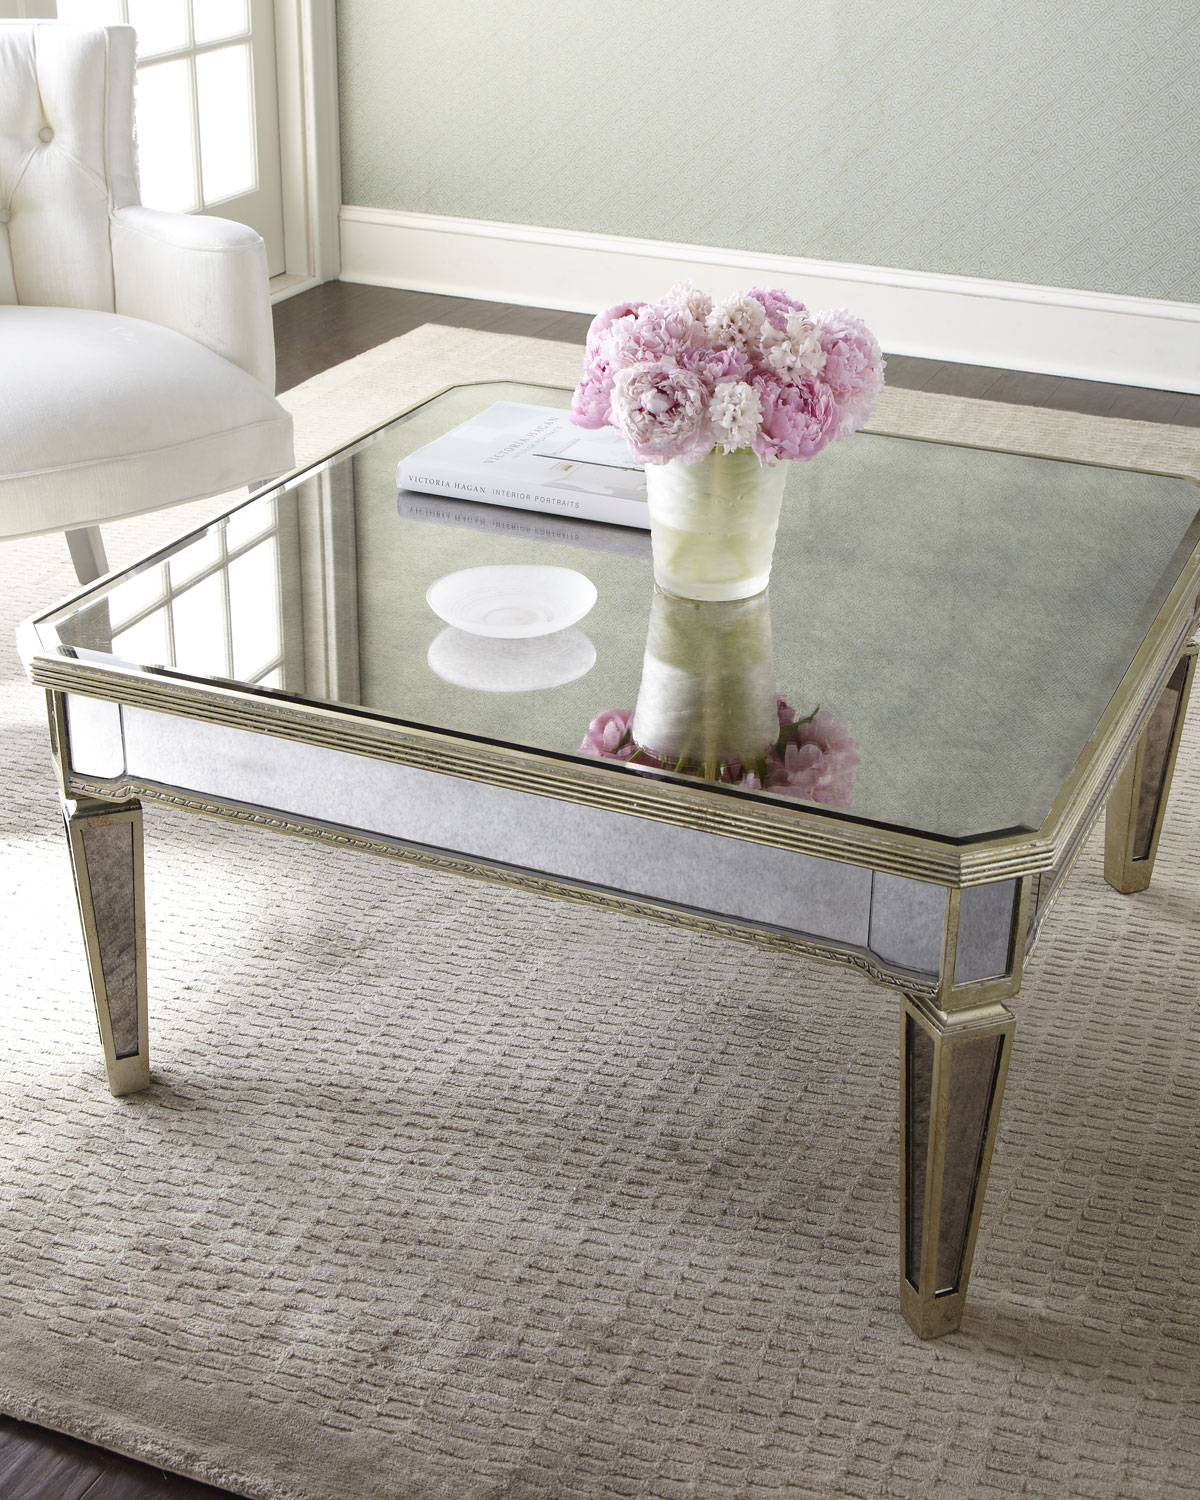 pier 1 coffee table Amelie Mirrored Coffee Table | Neiman Marcus pier 1 coffee table